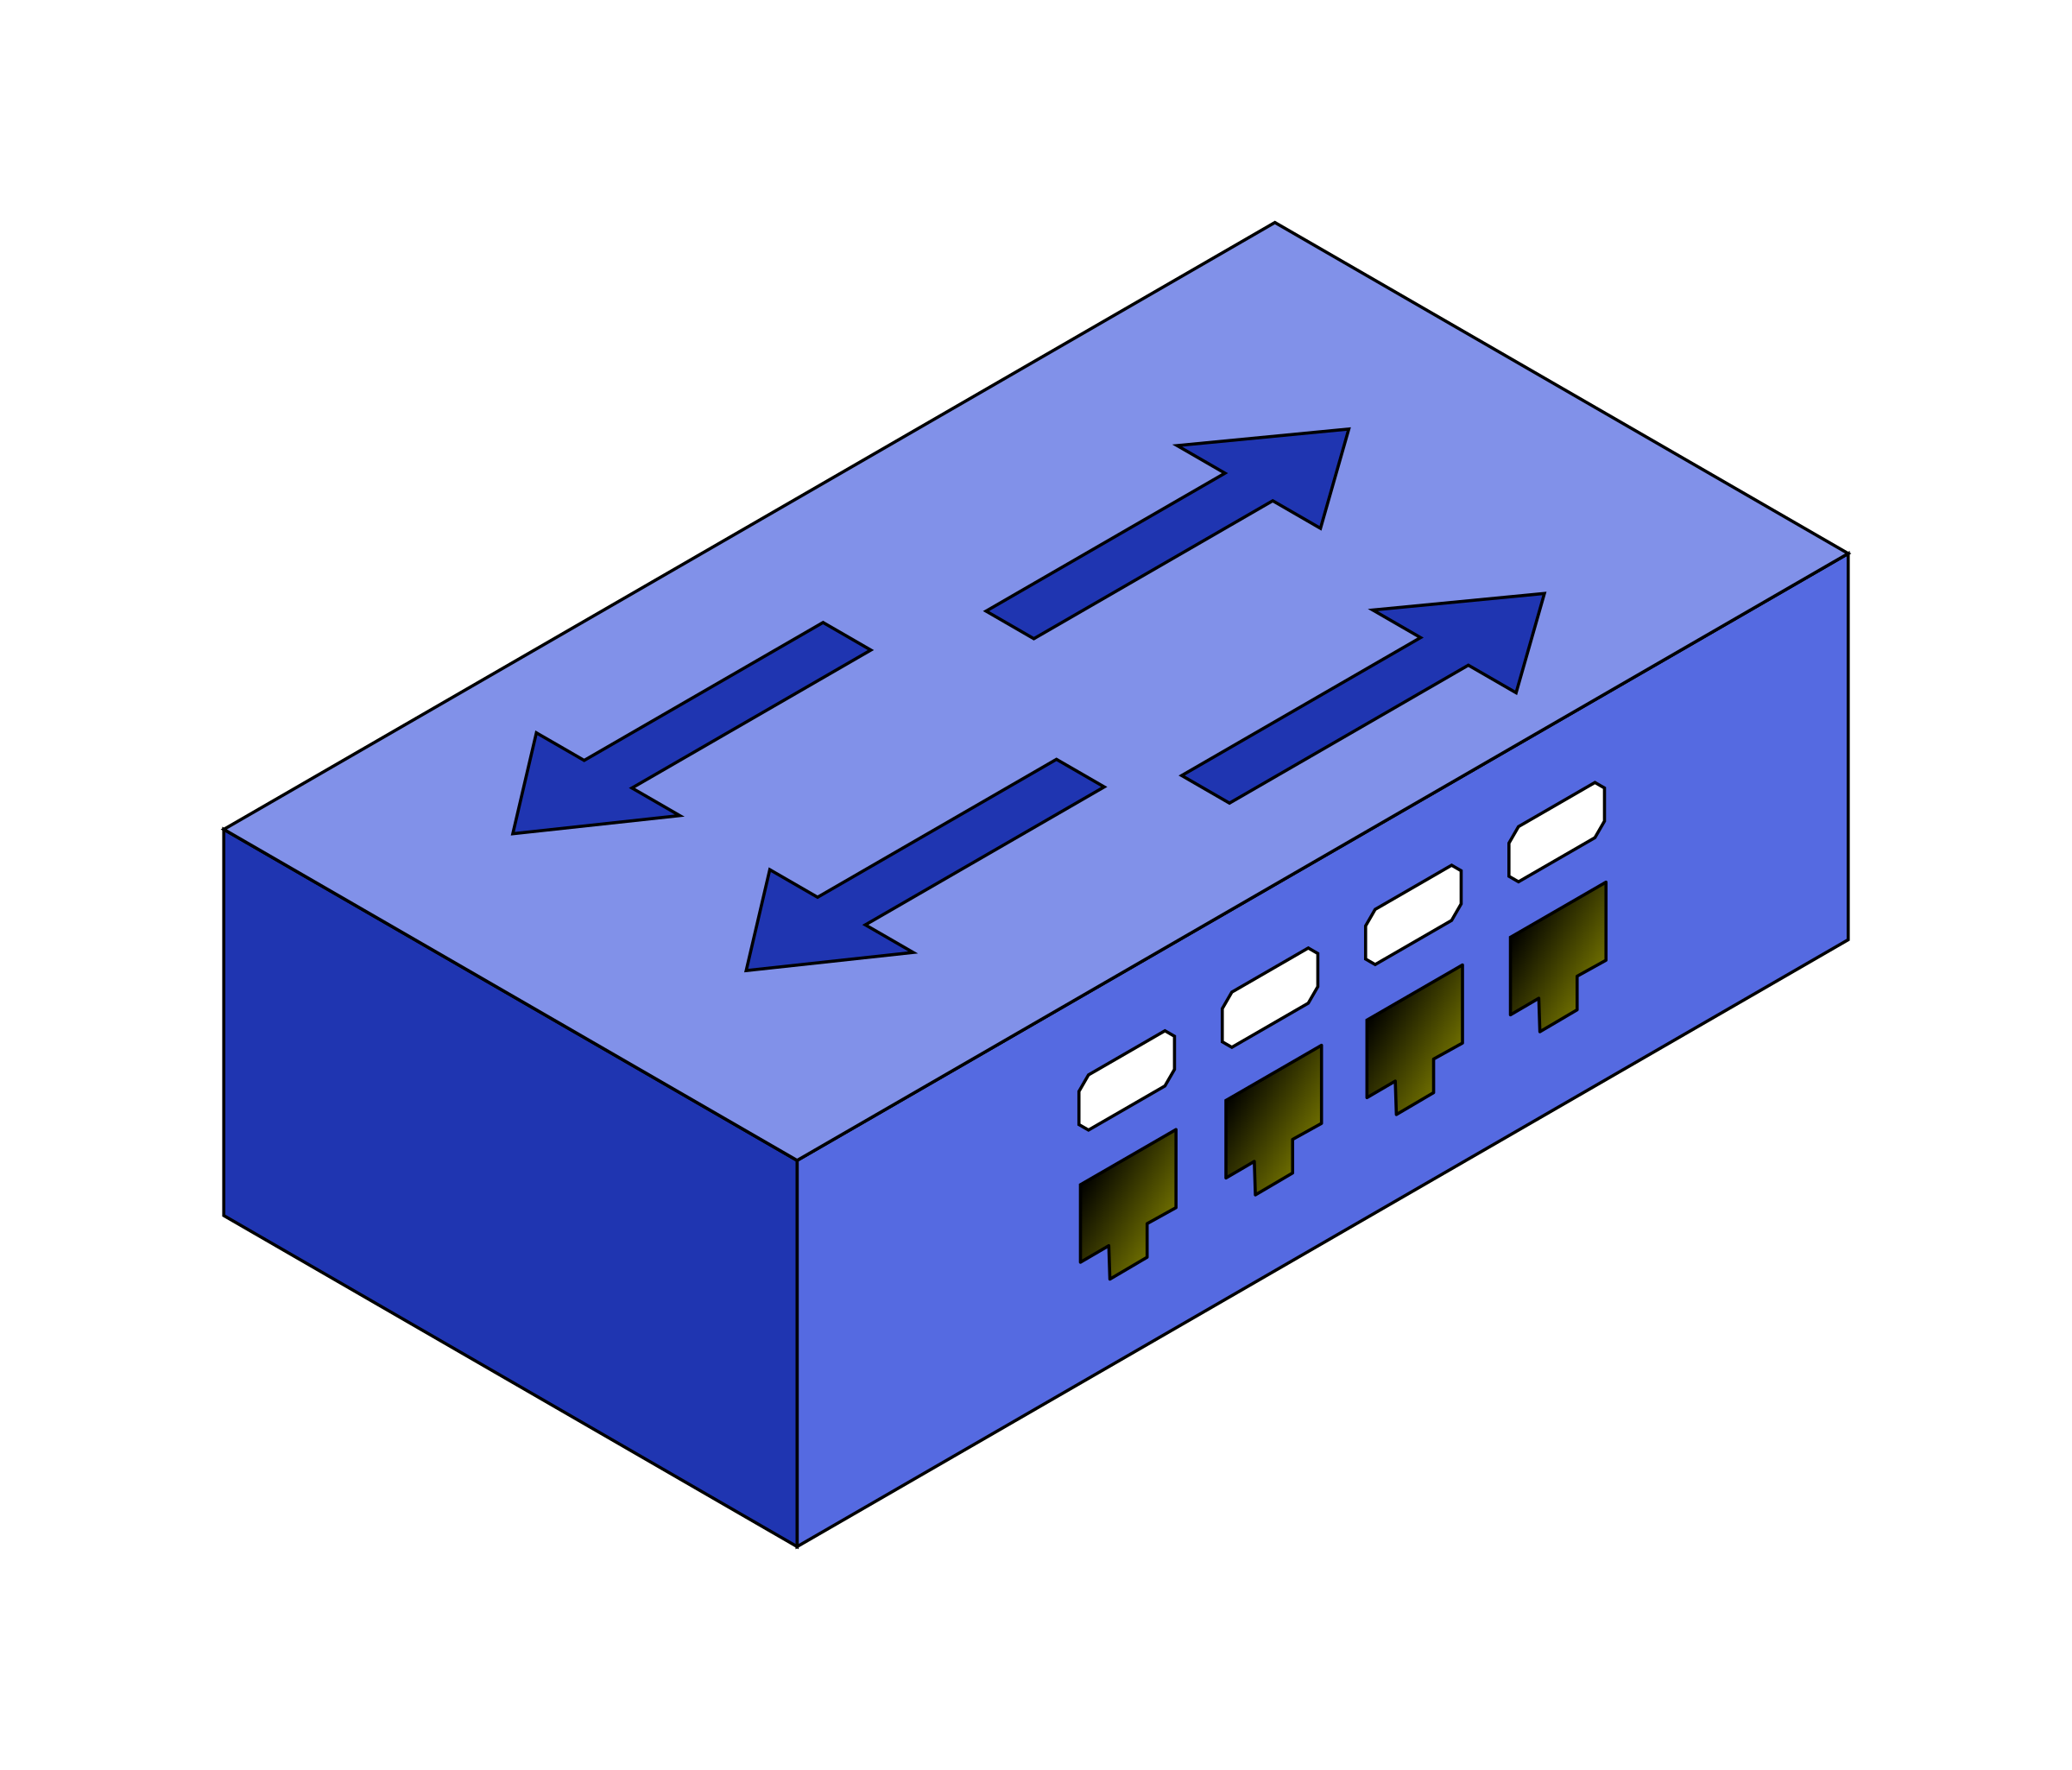 isometric switch by Fabuio